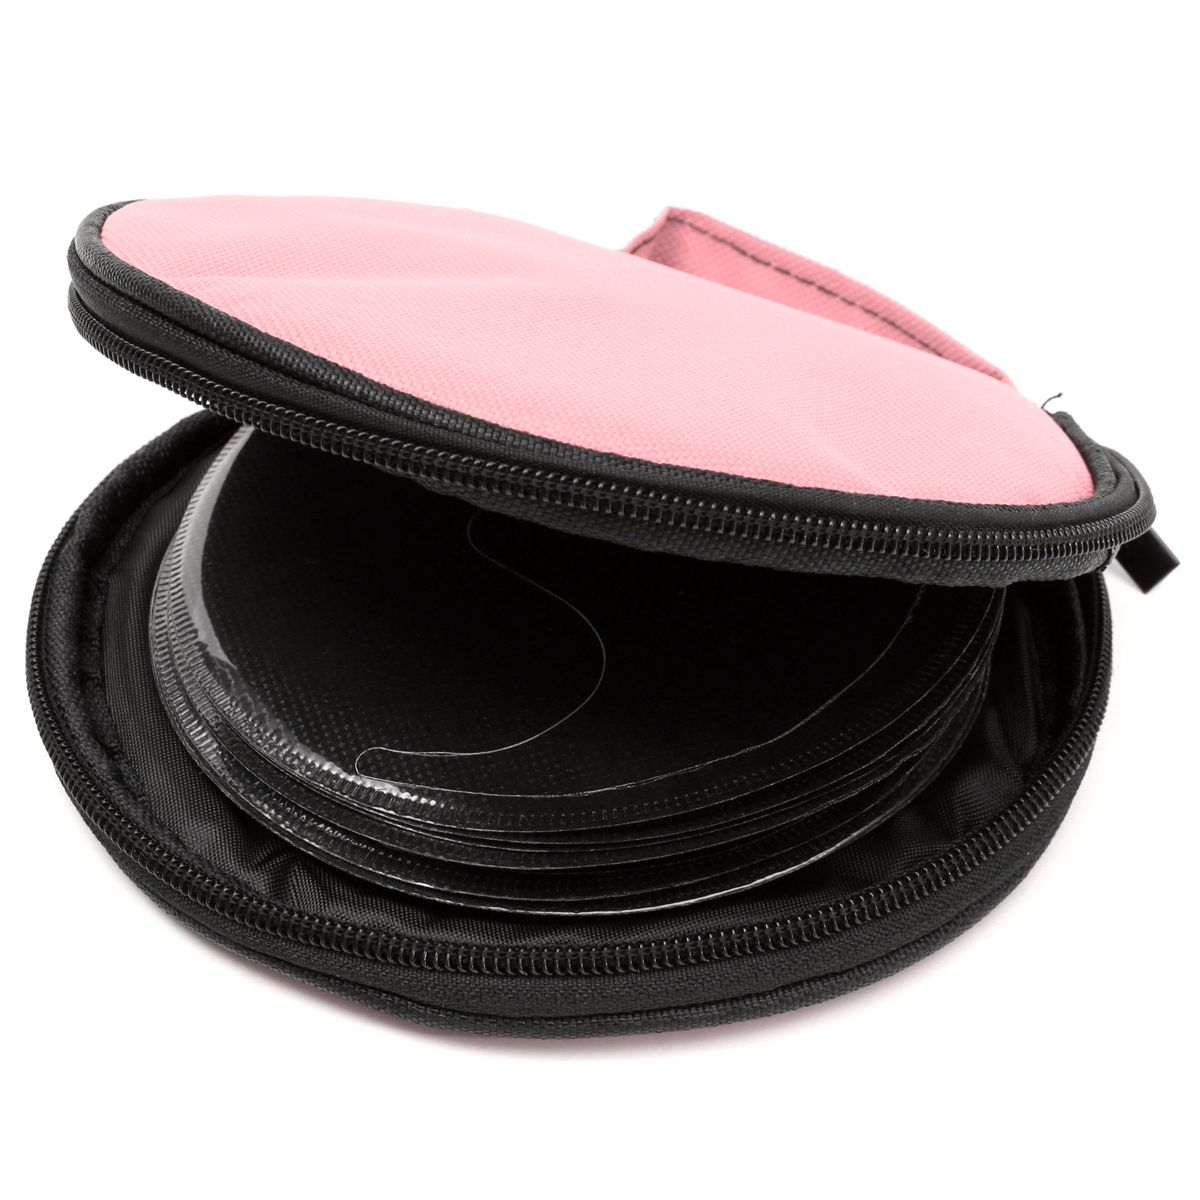 Portable CD DVD DISC Clear Cover Storage Case Wallet Bag Organizer Holder Packs with Handle Hold 20 pcs cd/vcd/dvd